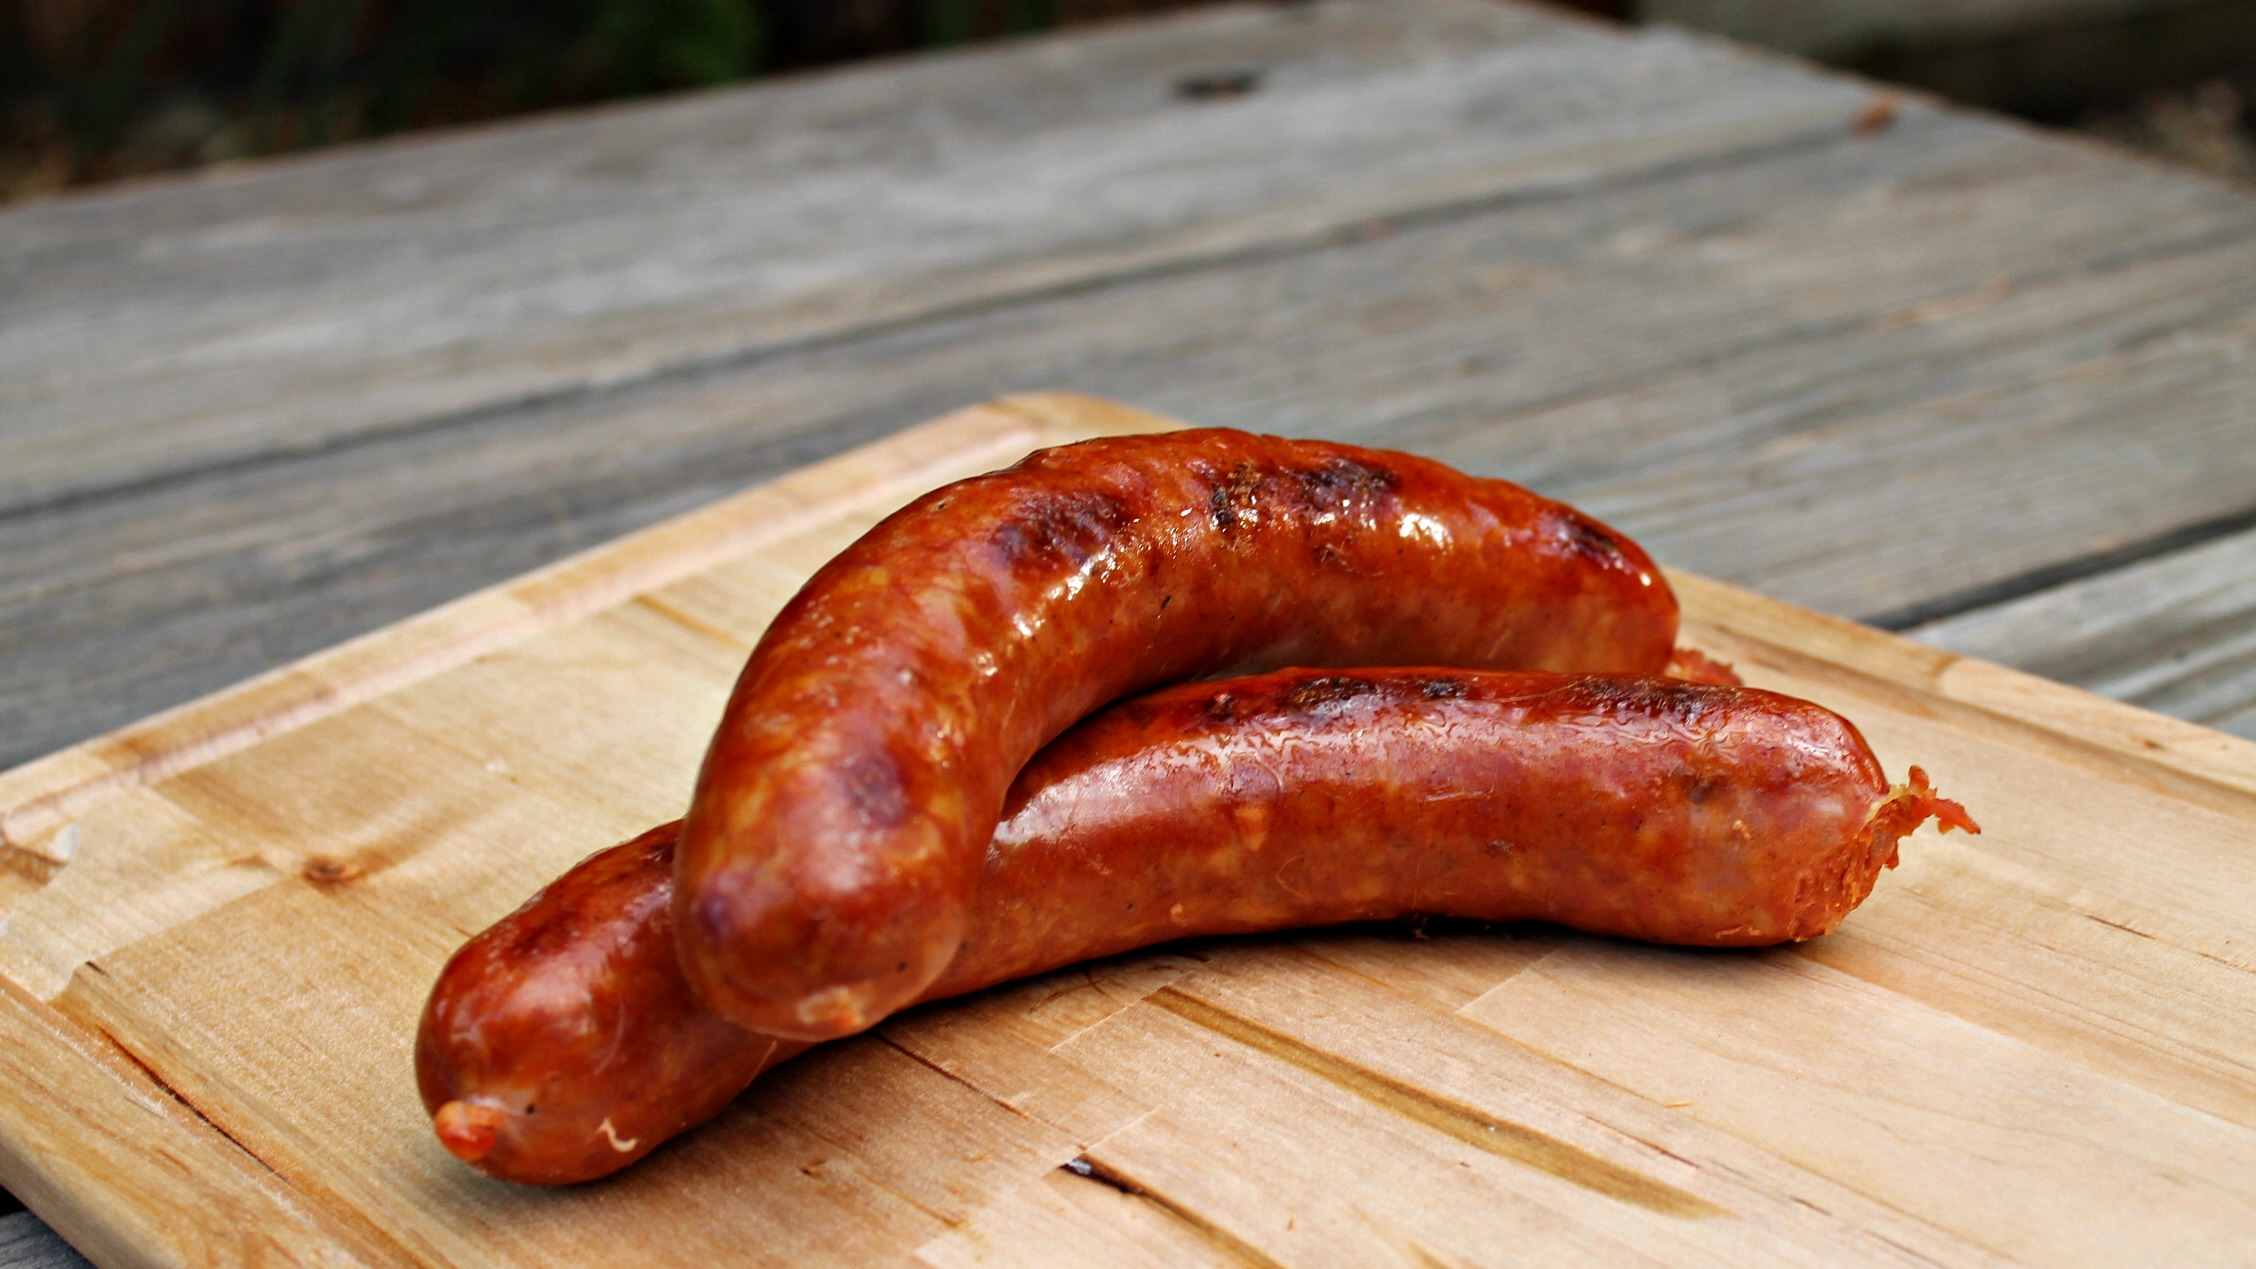 Sausages Wallpapers High Quality Download 2256x1269